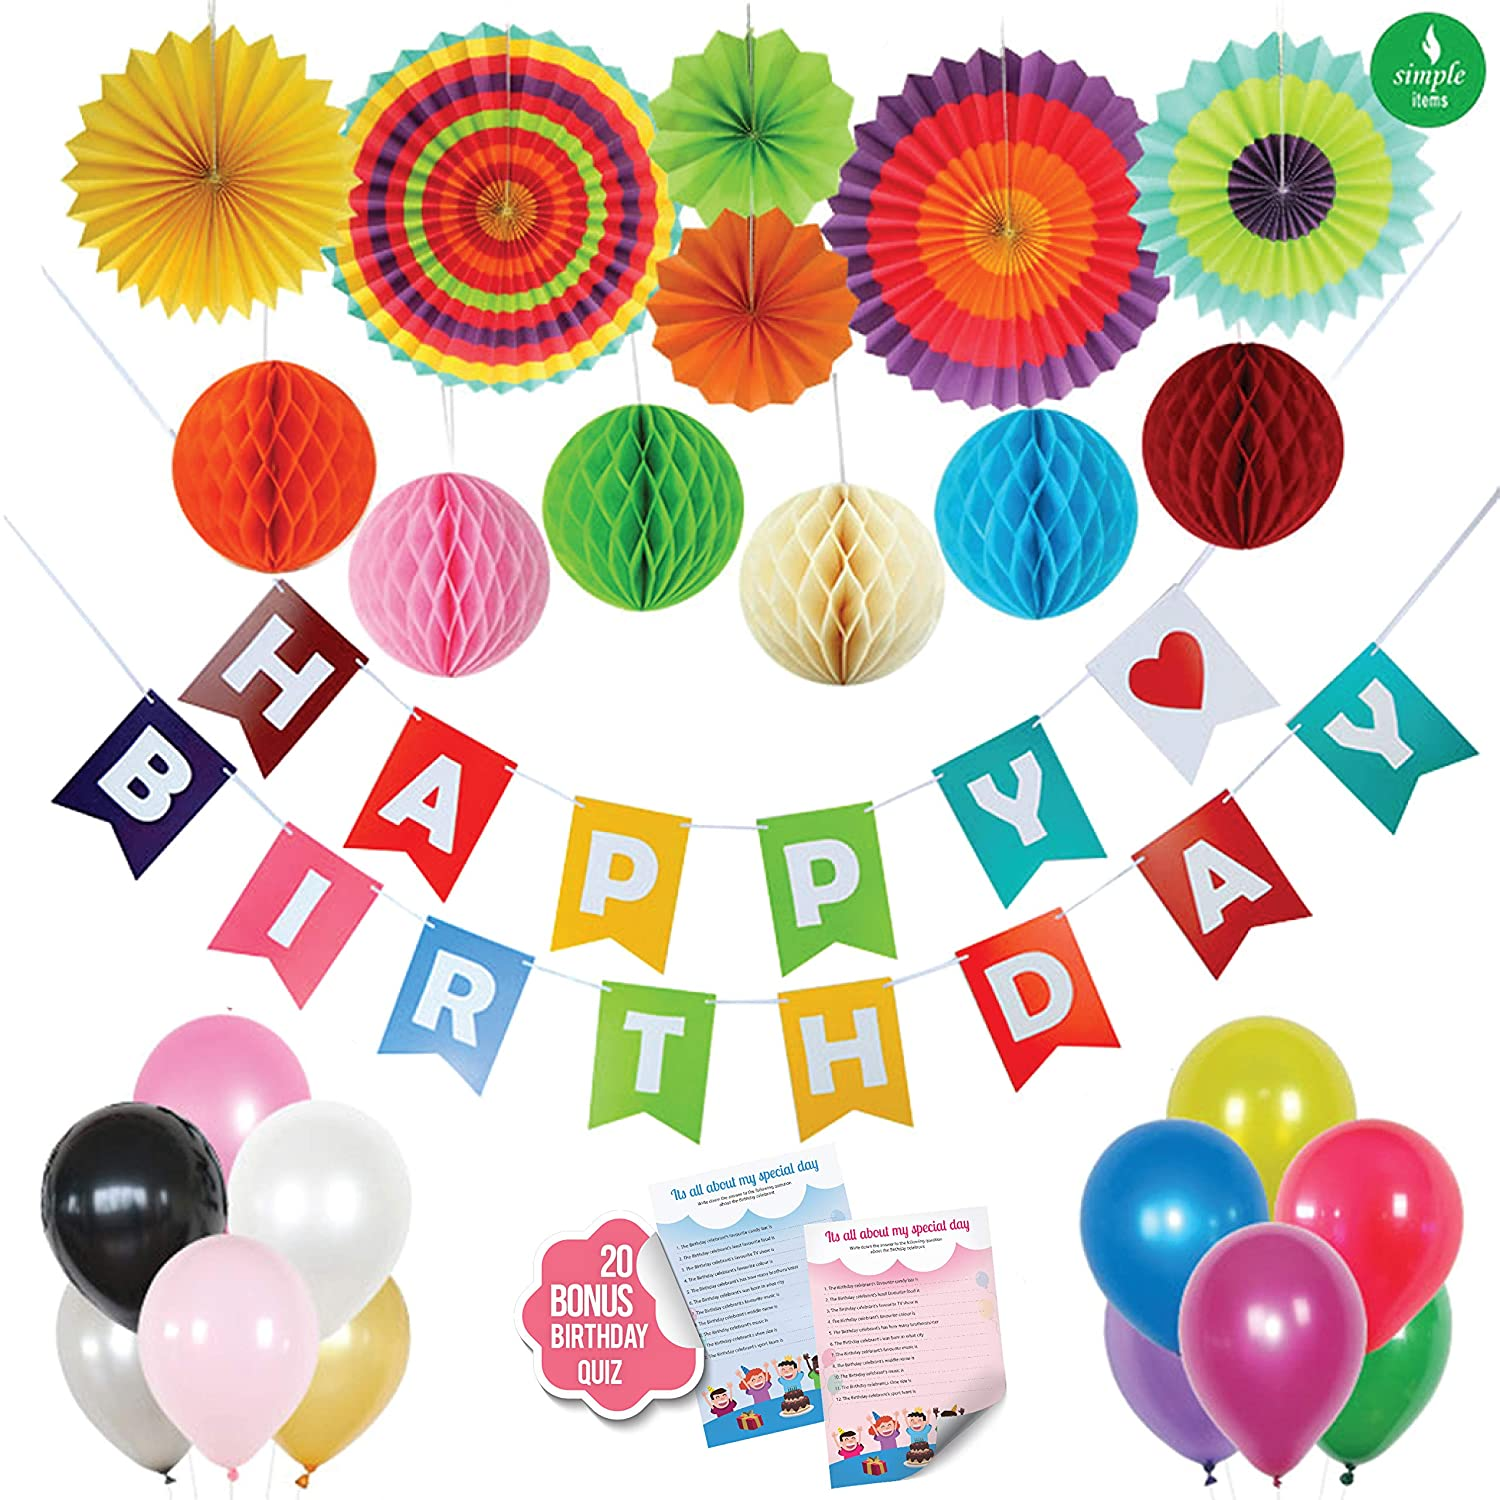 Happy Birthday party Decorations, + BONUS 20 Pcs Birthday Quiz Game - Birthday Banner Supplies, 6pcs Paper Honeycomb Balls, 12 pcs Latex Party Balloons and 6 colourful Paper Fan, for kids and adults Simple Items